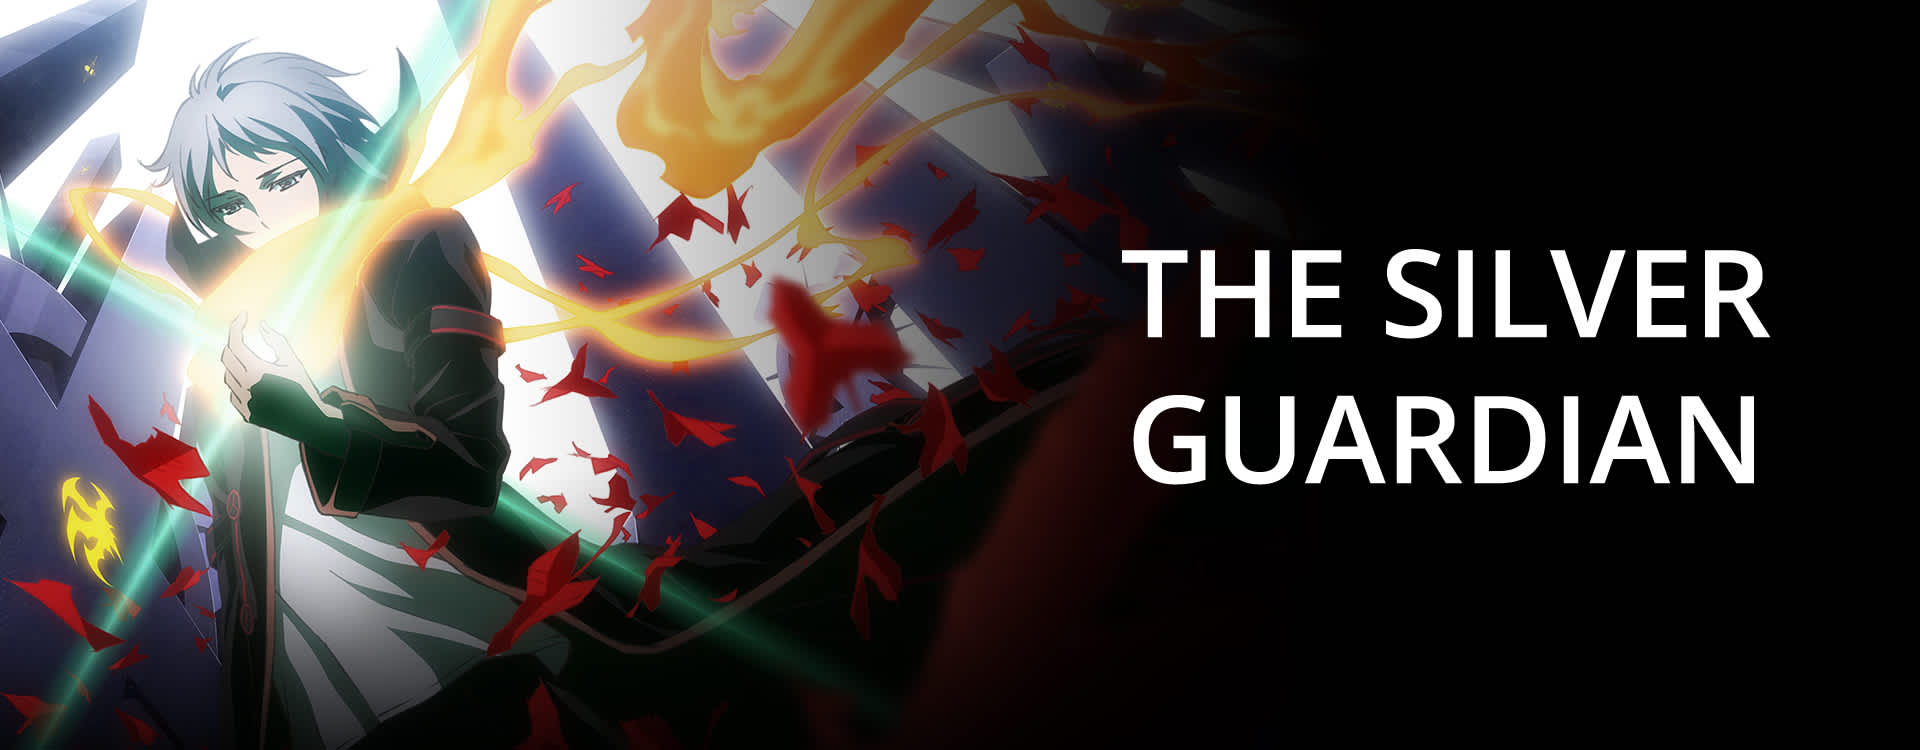 Watch The Silver Guardian Episodes Sub & Dub | Action